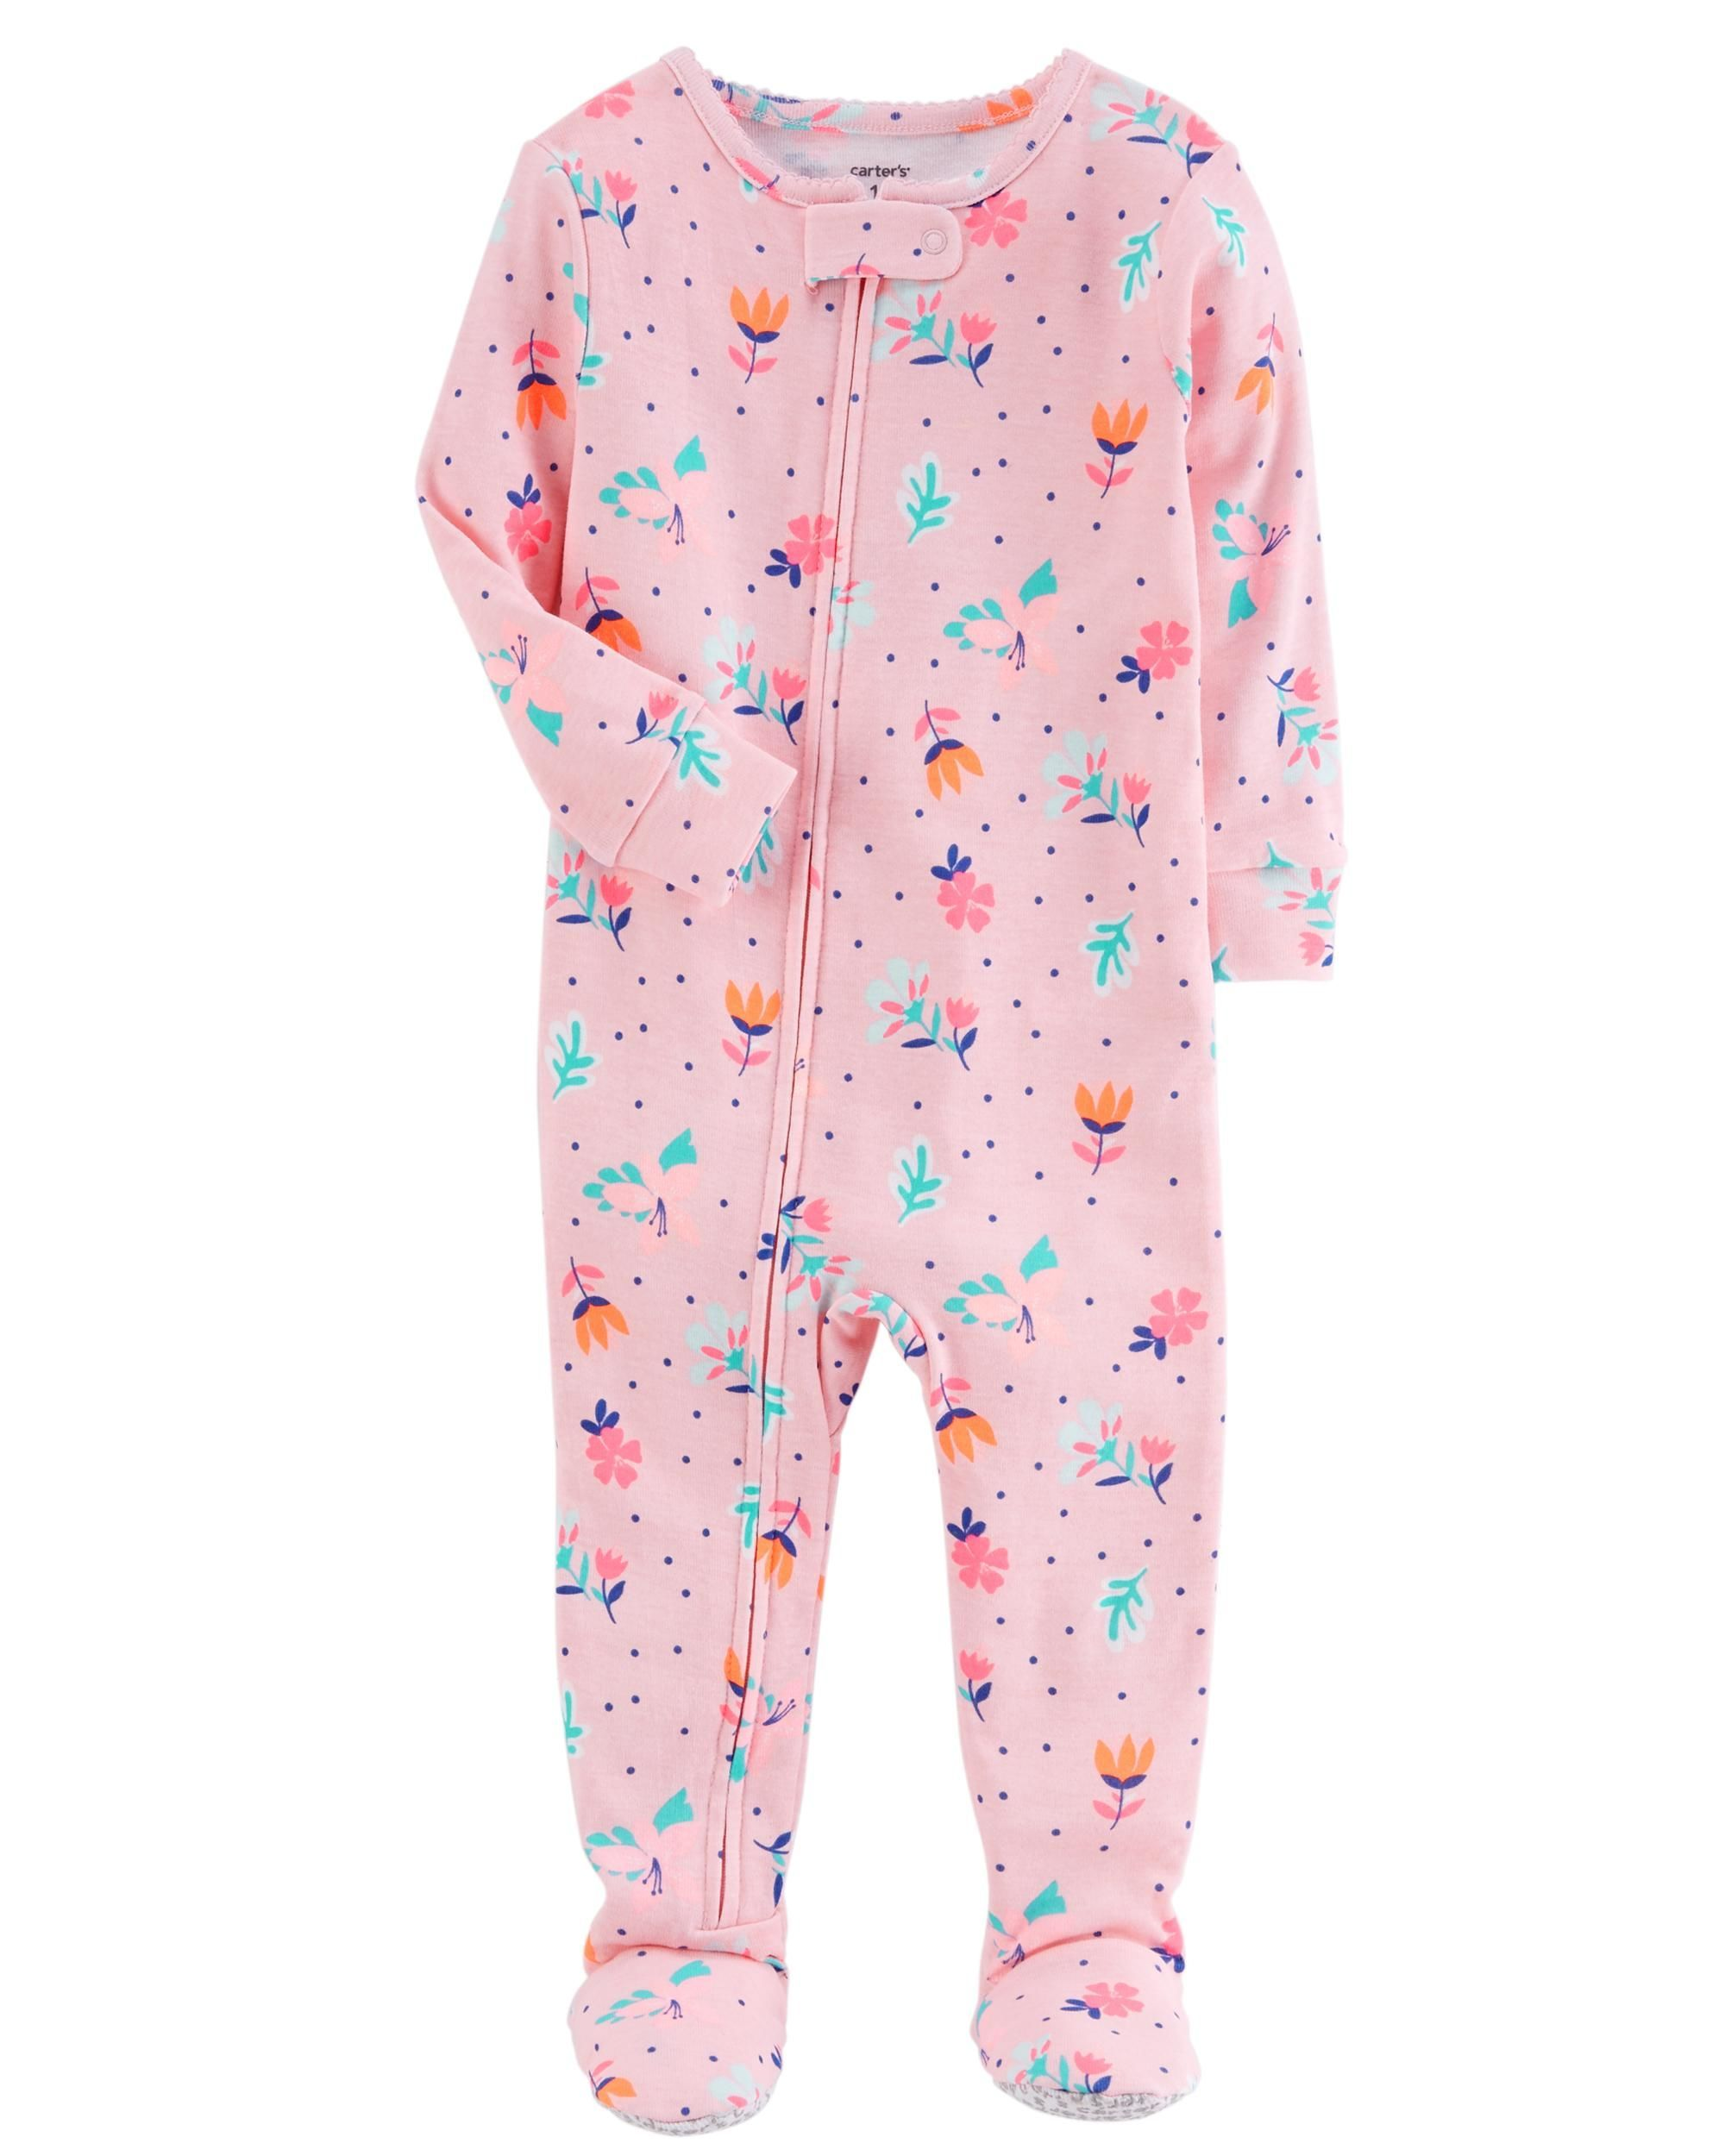 5573bb03a 1-Piece Neon Floral Snug Fit Cotton PJs